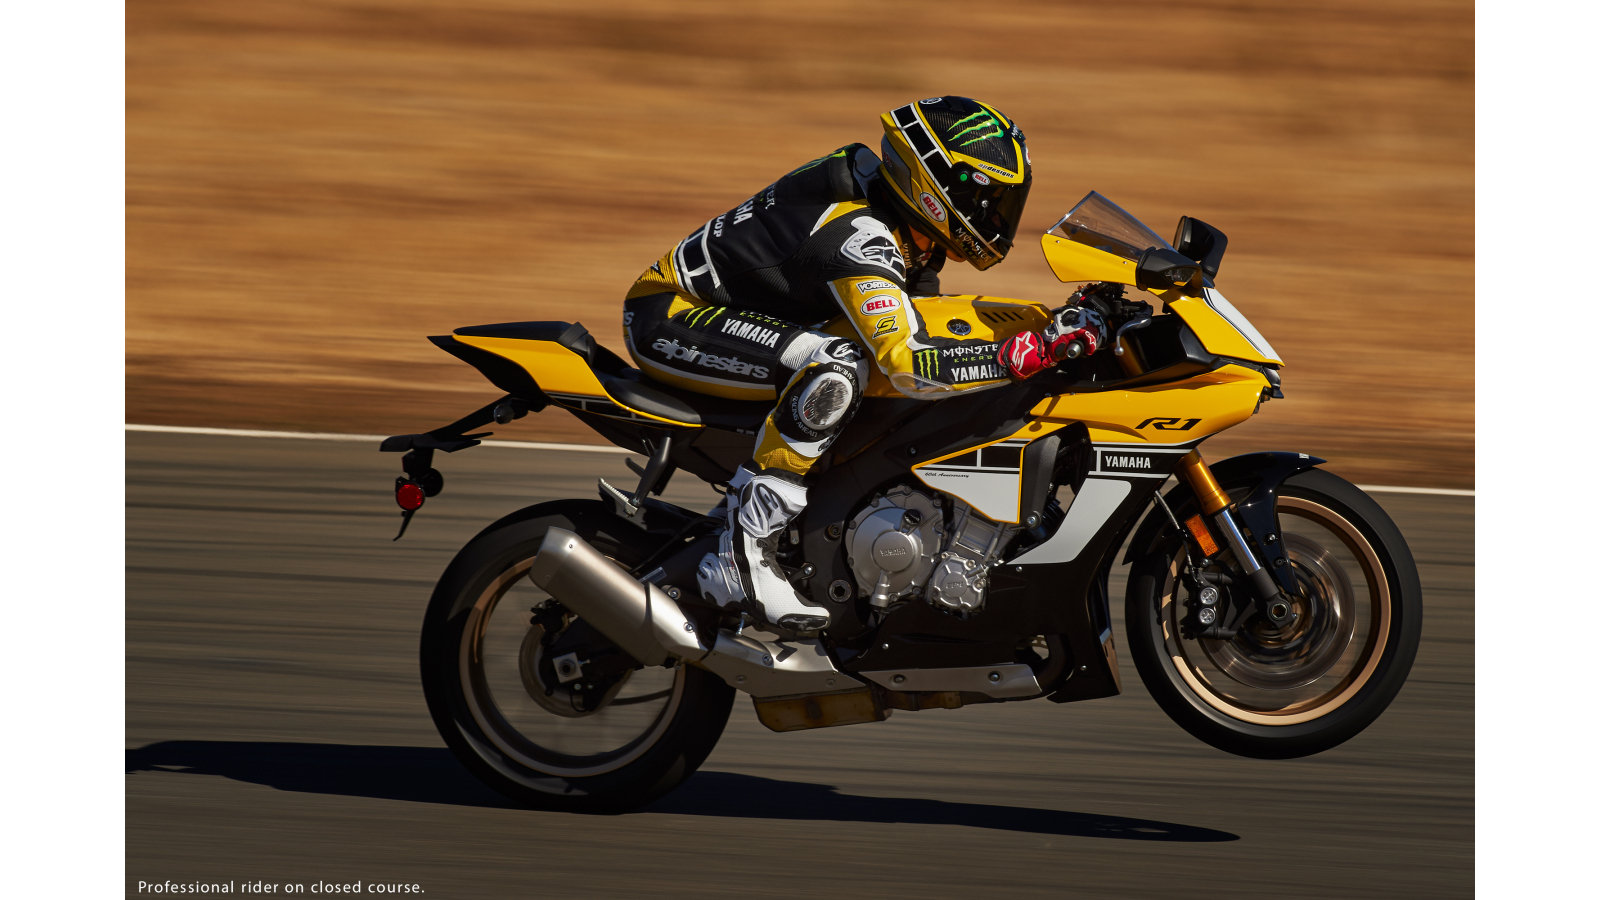 2016 yamaha yzf r1 yzf r1s yzf r1m picture 680874 motorcycle review top speed. Black Bedroom Furniture Sets. Home Design Ideas